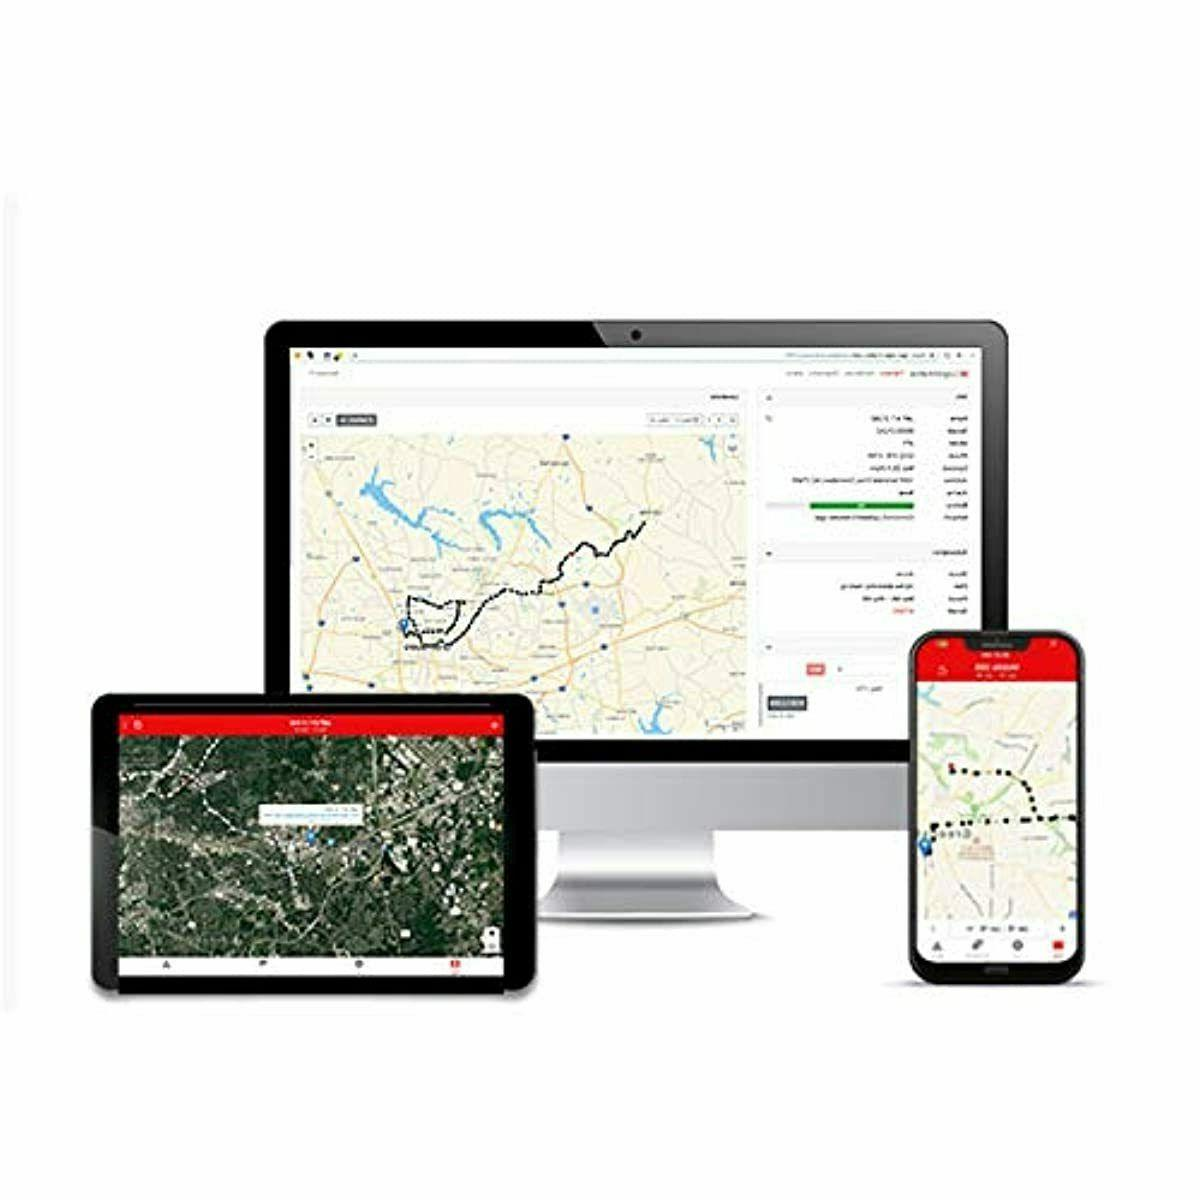 Logistimatics Mobile-200 Tracker with Audio Monitoring